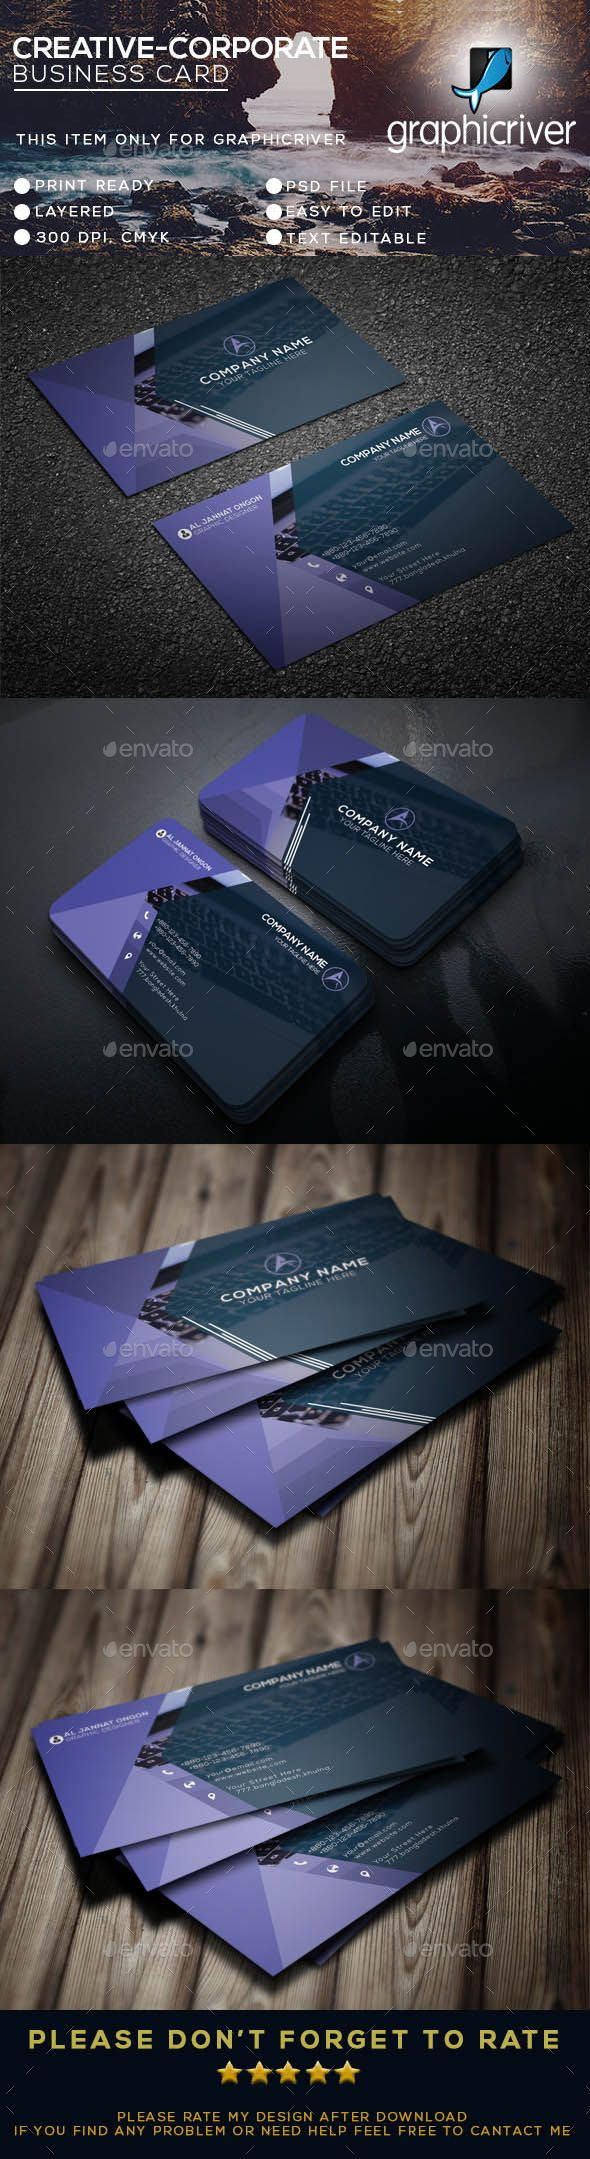 Corporate Business Card - Business Cards Print Templates Download here: https://graphicriver.net/item/corporate-business-card/19065391?https://graphicriver.net/item/business-cards/20038567?ref=classicdesignp